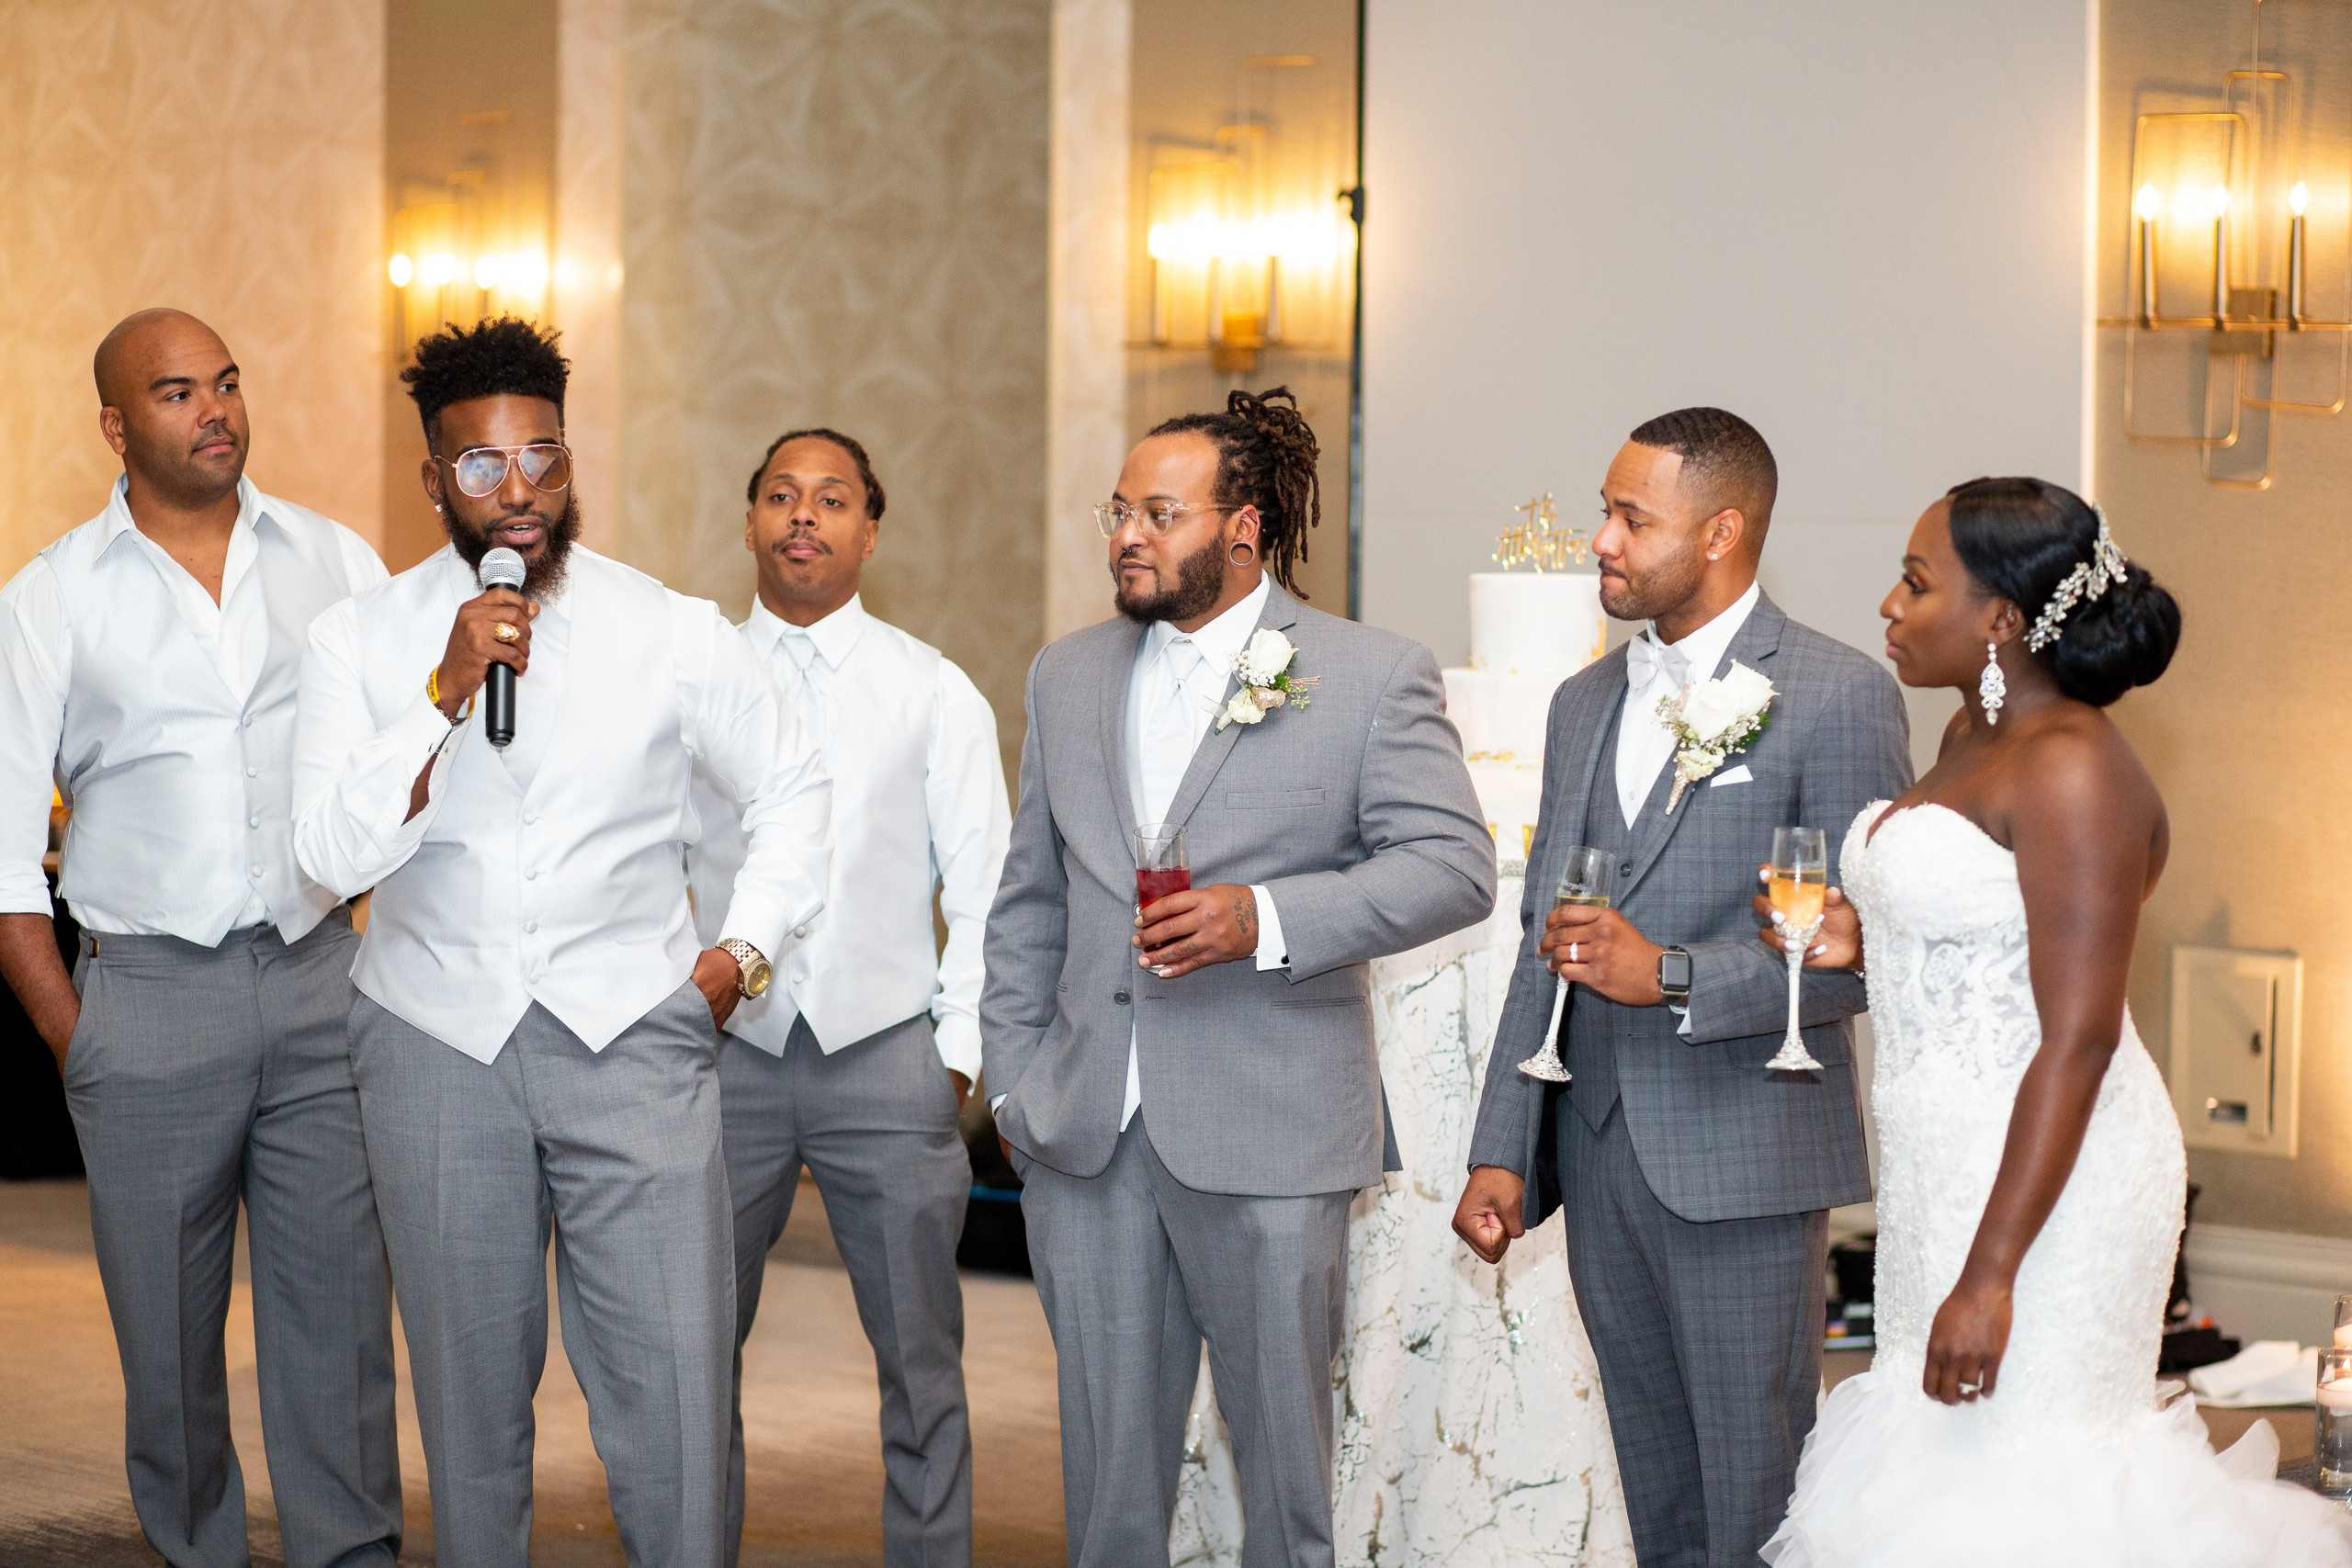 The groomsmen give their speech and toast the newlyweds during the wedding reception at the Hilton Main in Norfolk, Virginia.